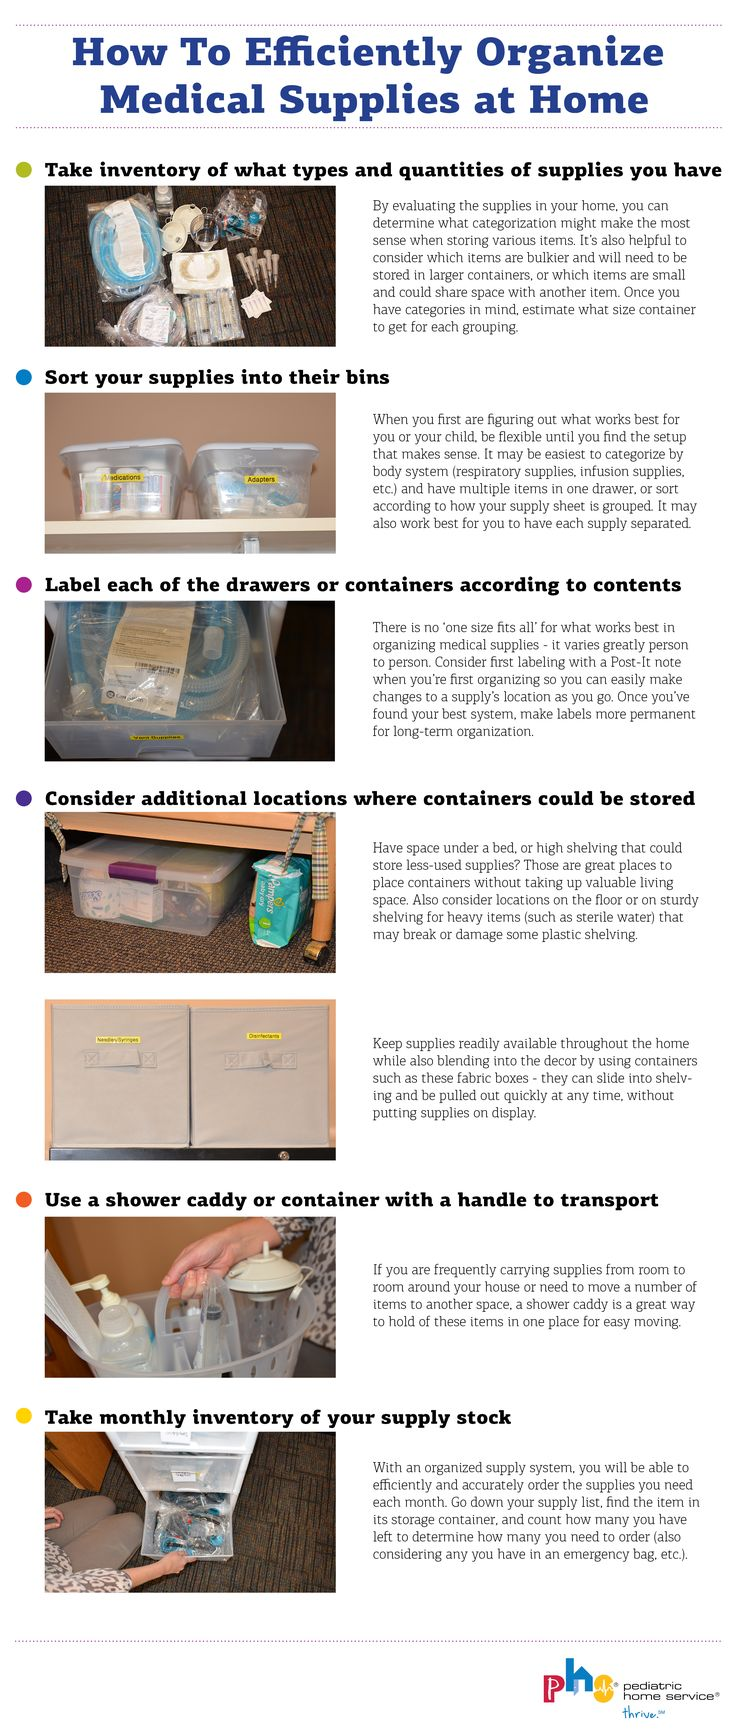 Si simplastic 3 way catheter - 6 Steps To Organized Medical Supply Storage At Home